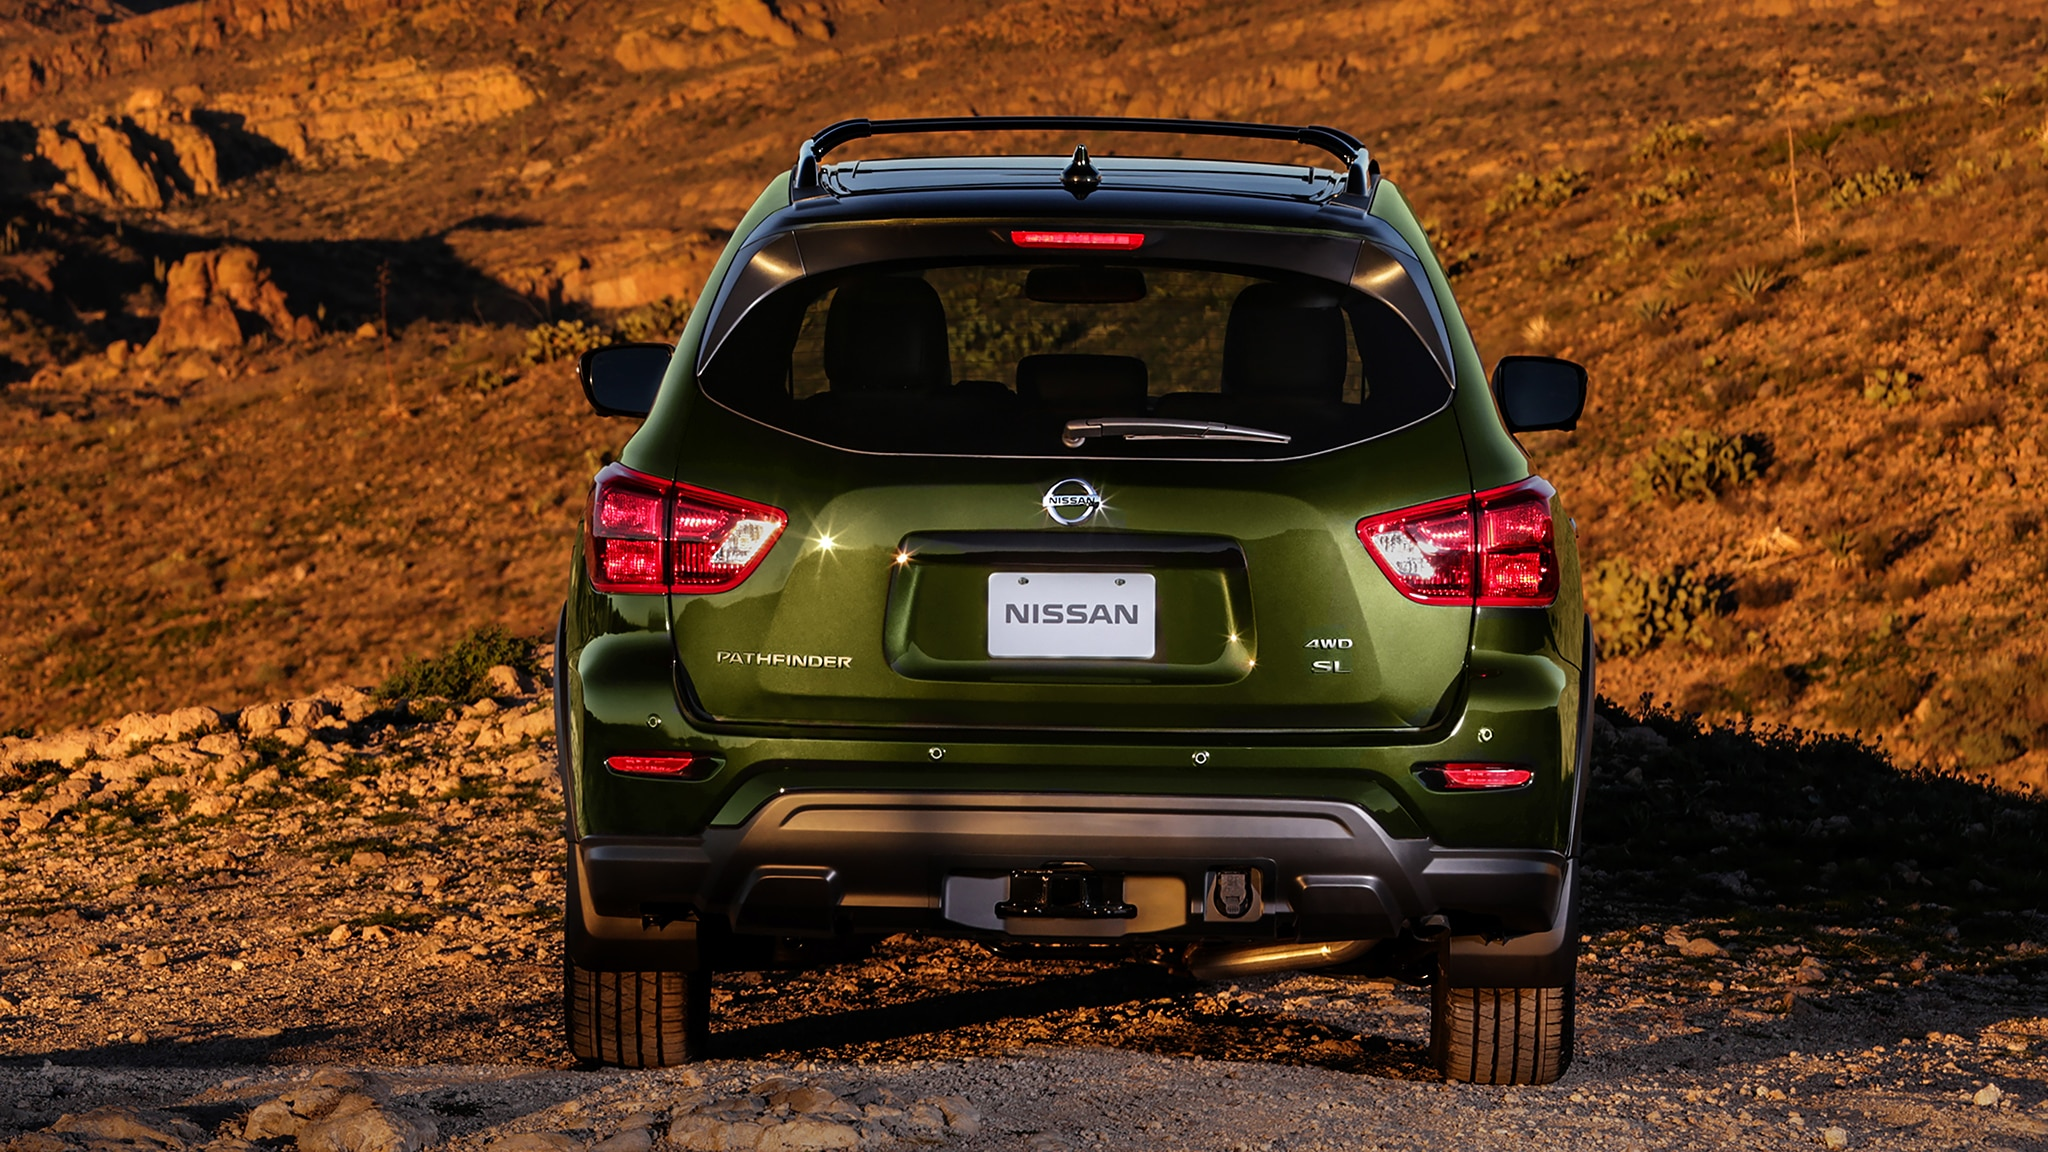 The Nissan Pathfinder Can Be Kind of Tough-Looking ...